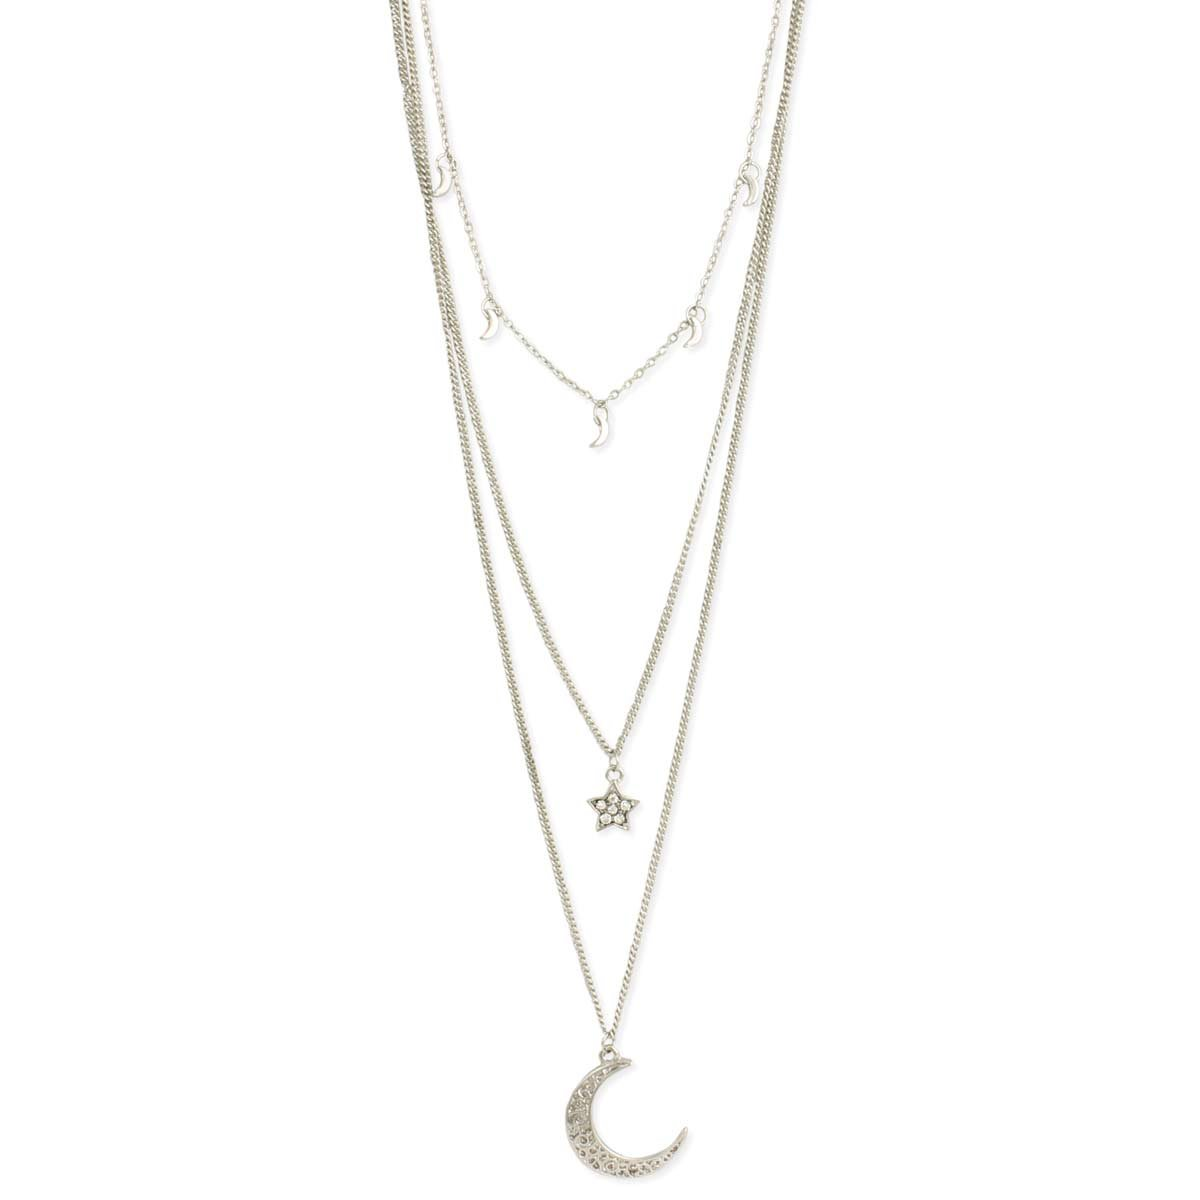 Light of the Silvery Moon & Stars Necklace